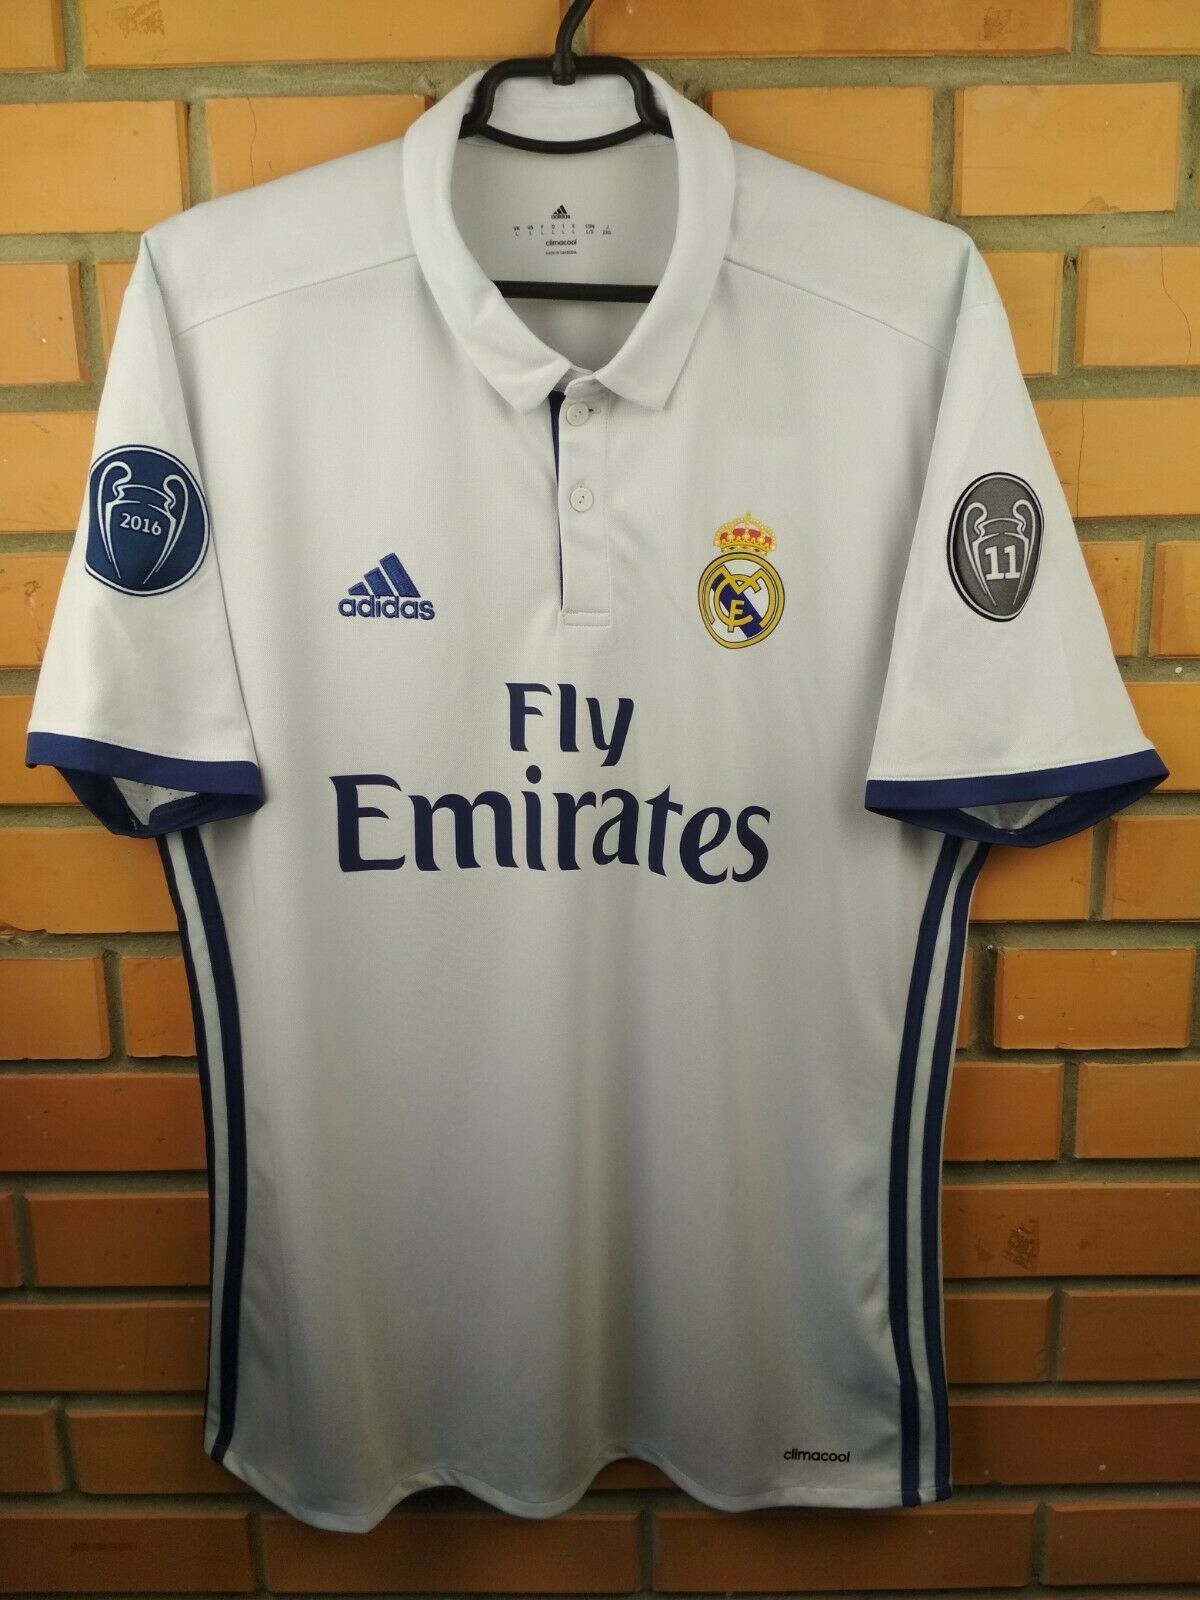 c1d29fbd819 Real Madrid jersey large 2016 2017 home shirt AI5187 soccer football Adidas